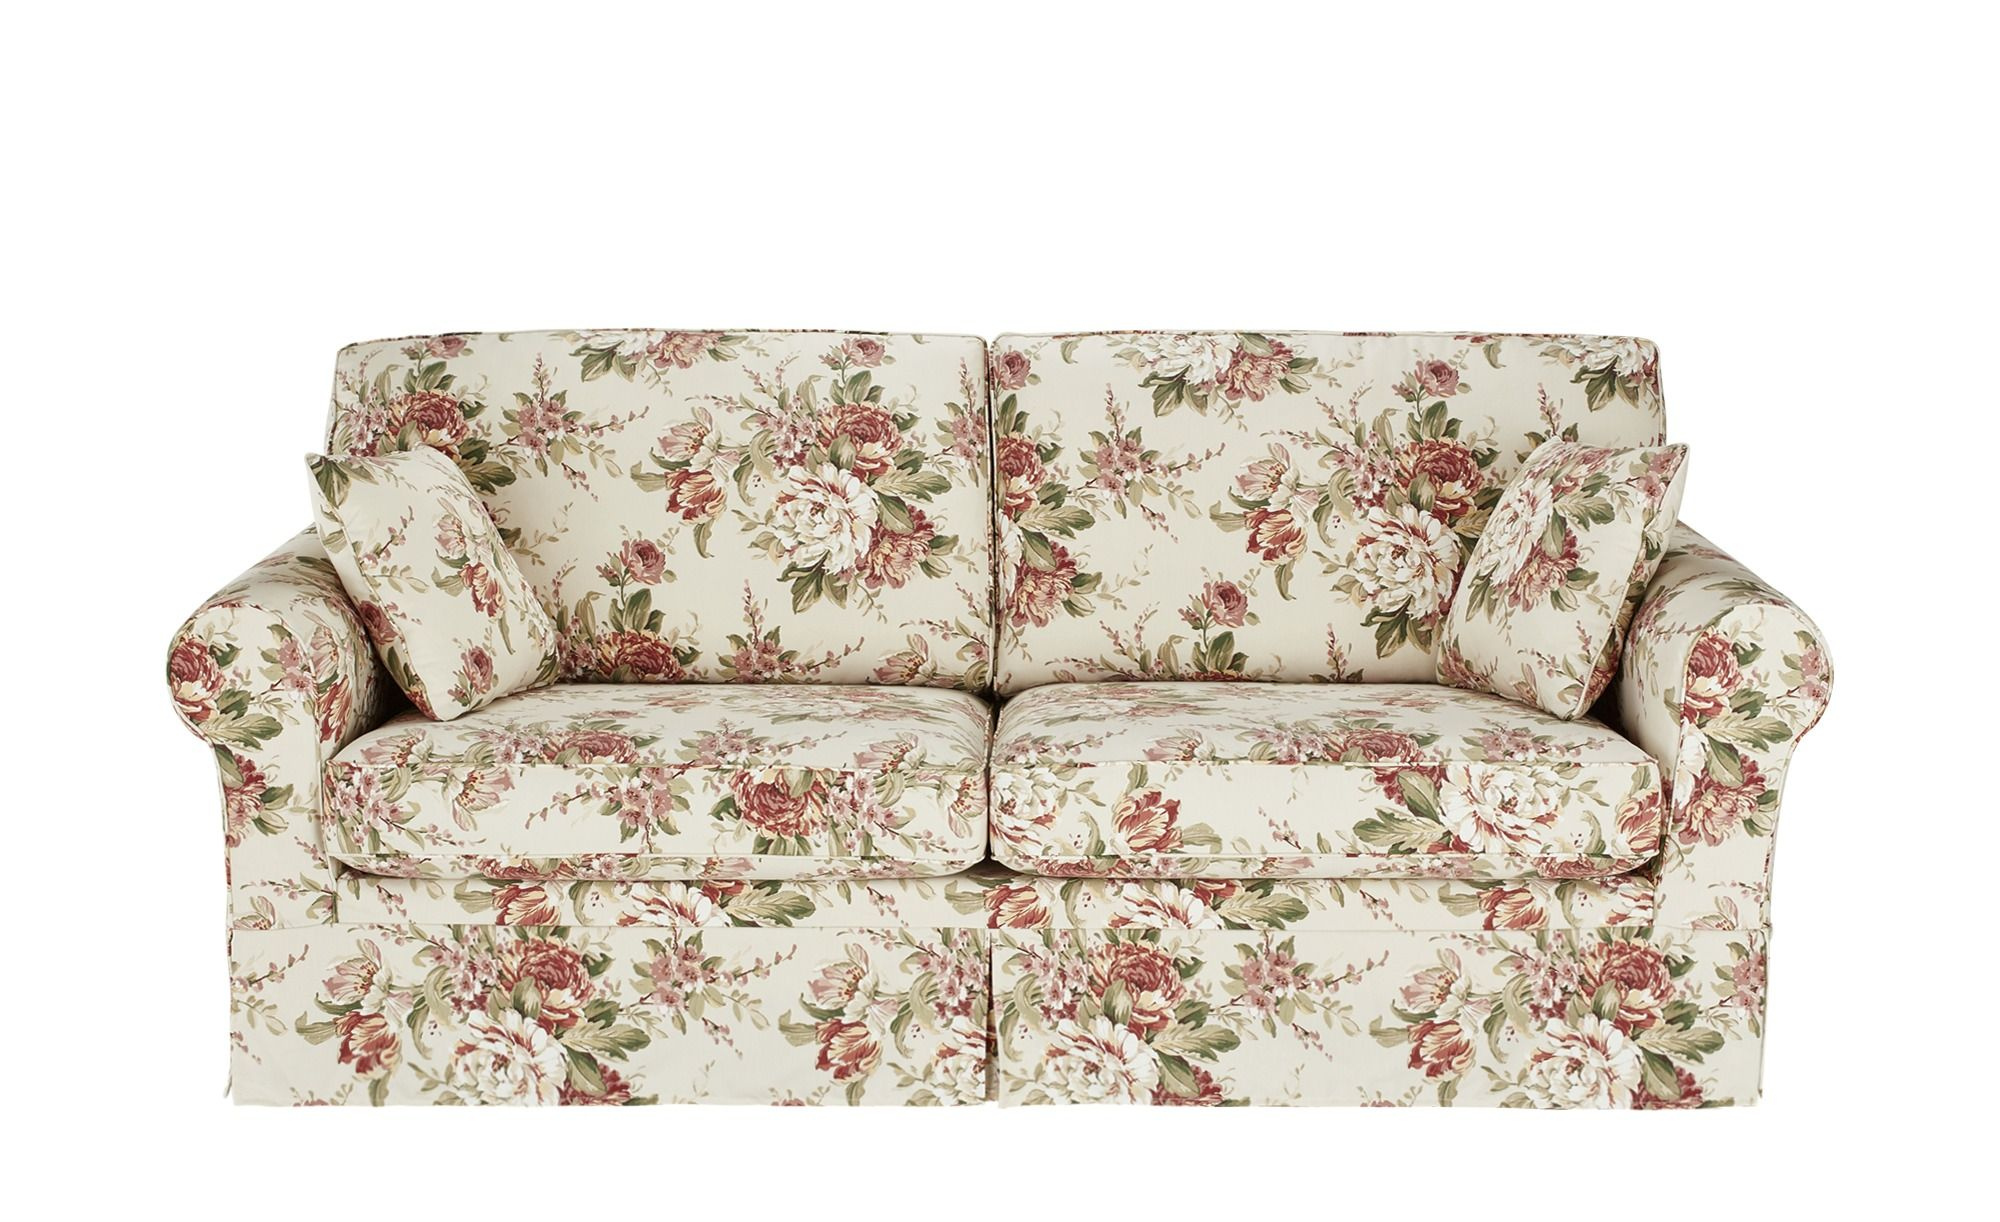 Nett Sofa Kolonialstil Sofa Kolonialstil Couch Kolonialstil Grosse Sofas